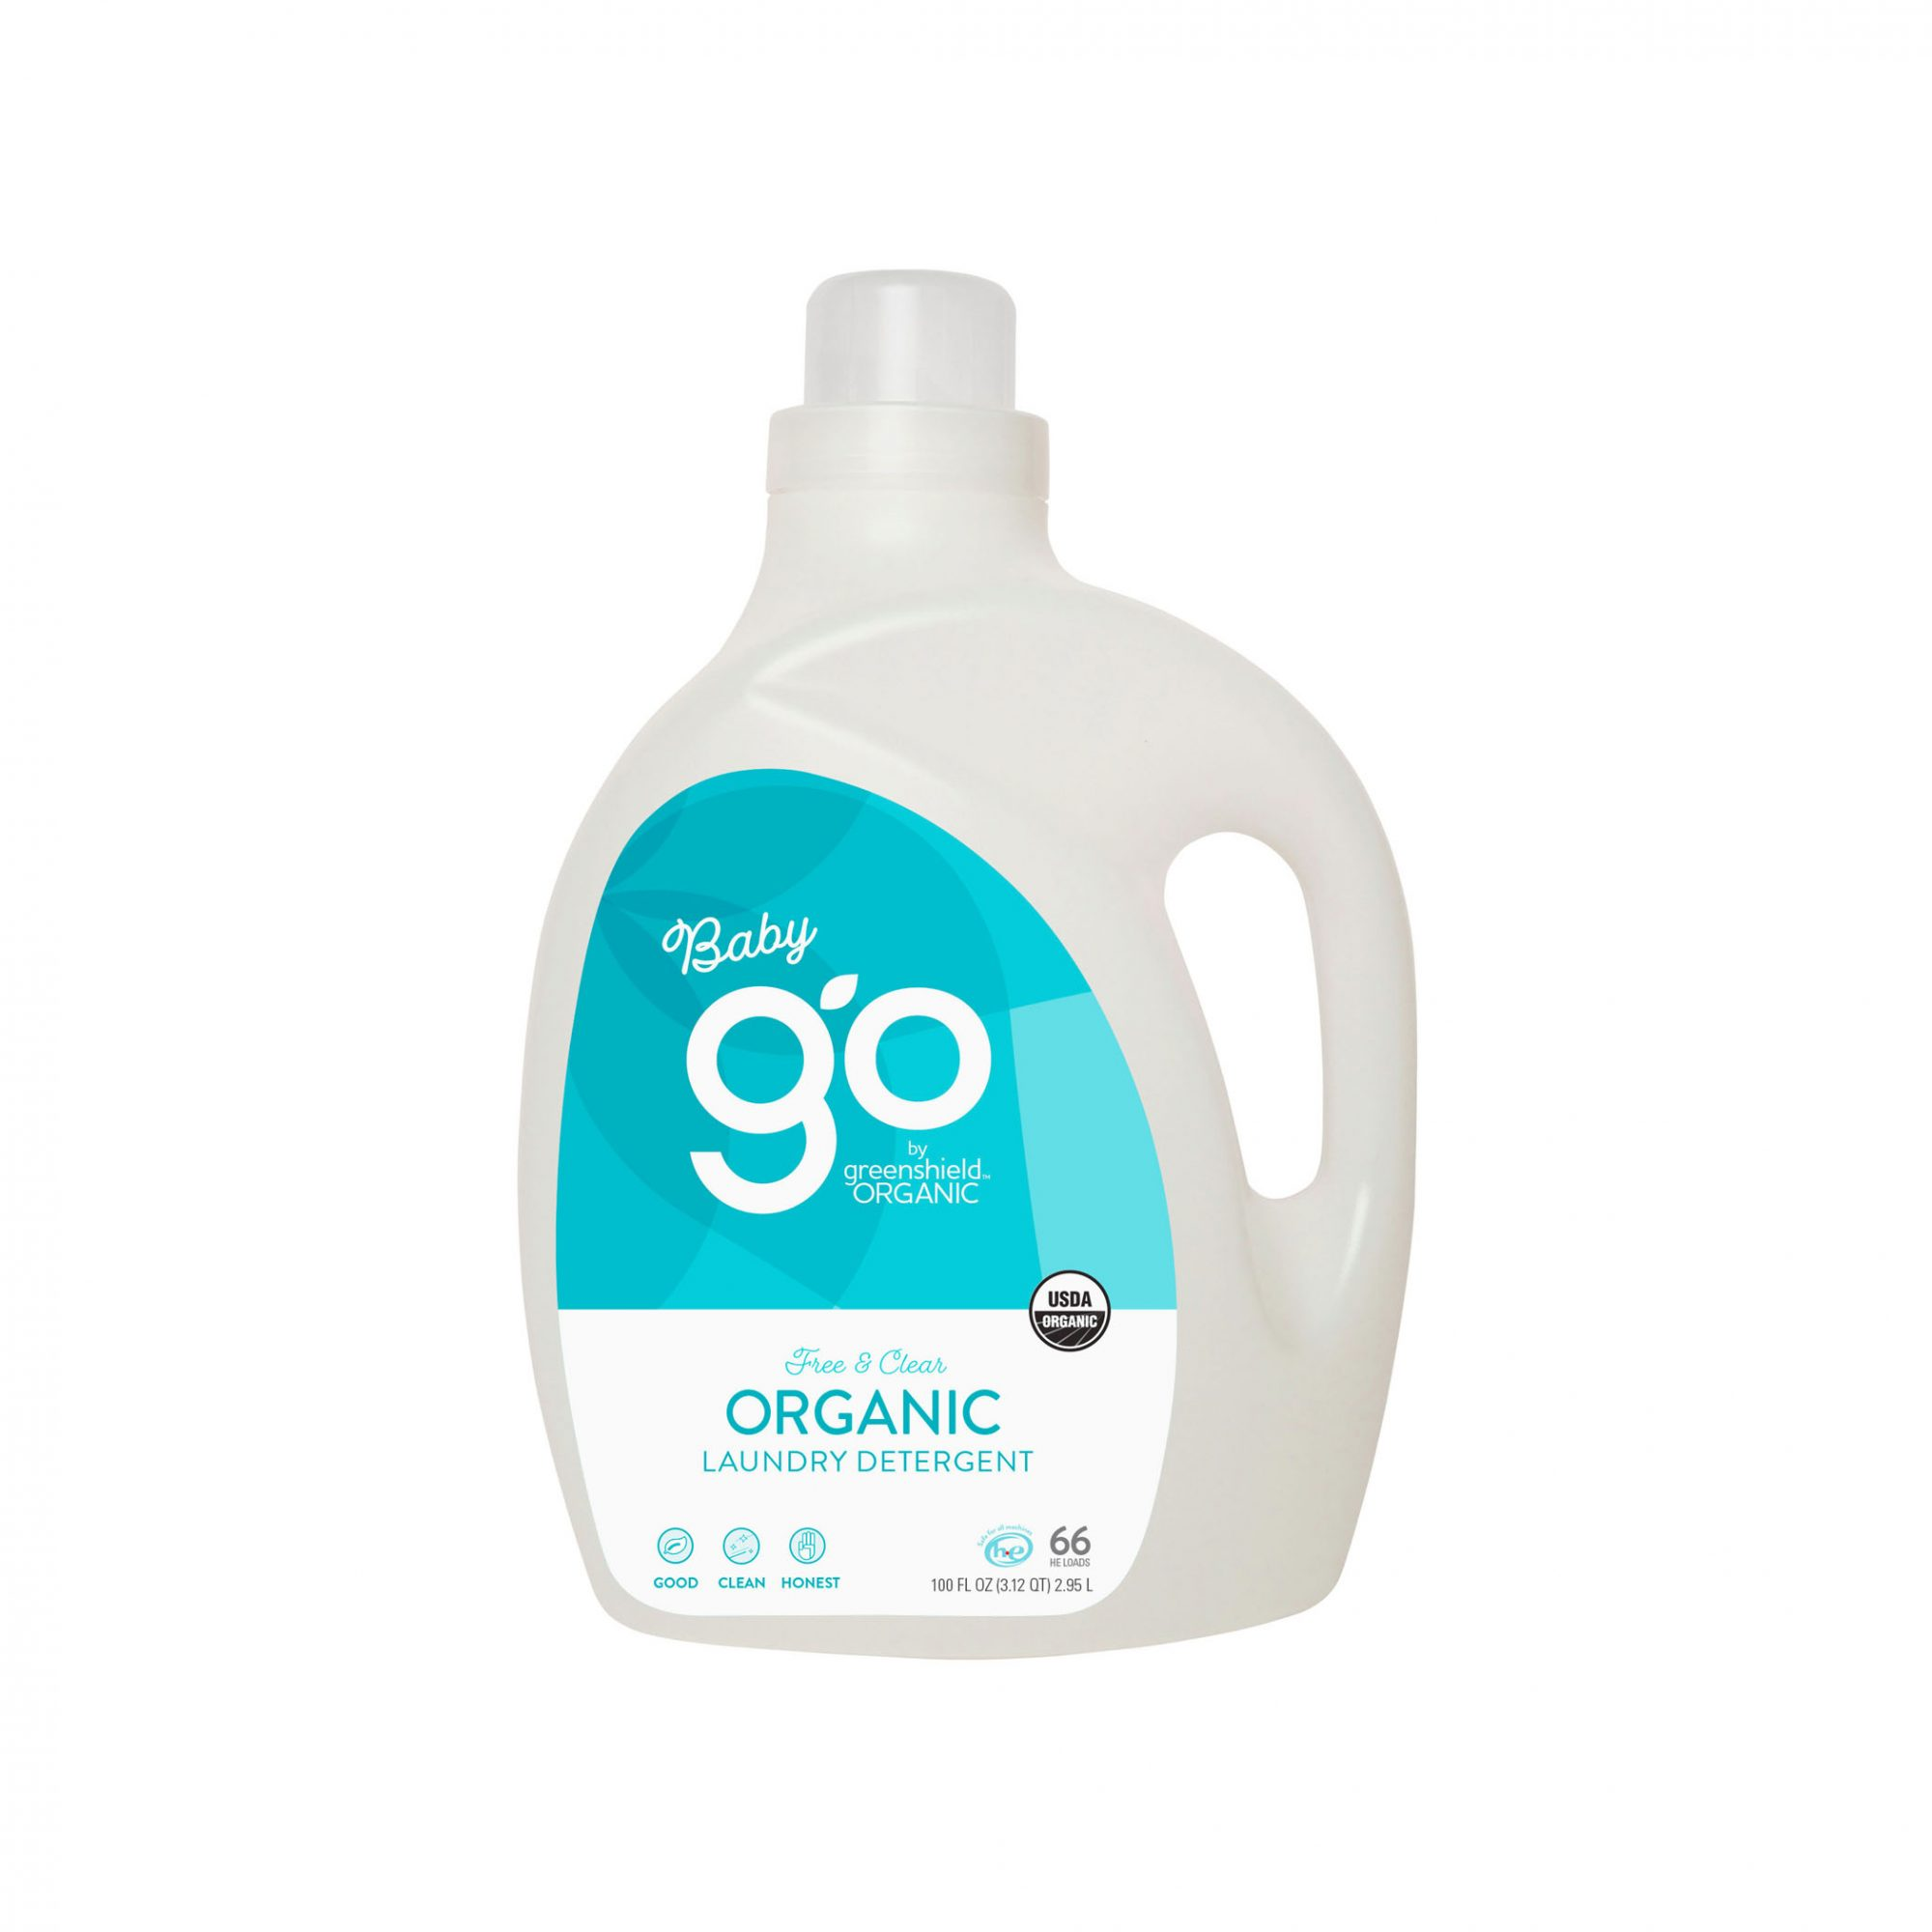 Go Organic Baby Laundry Detergent in Free & Clear